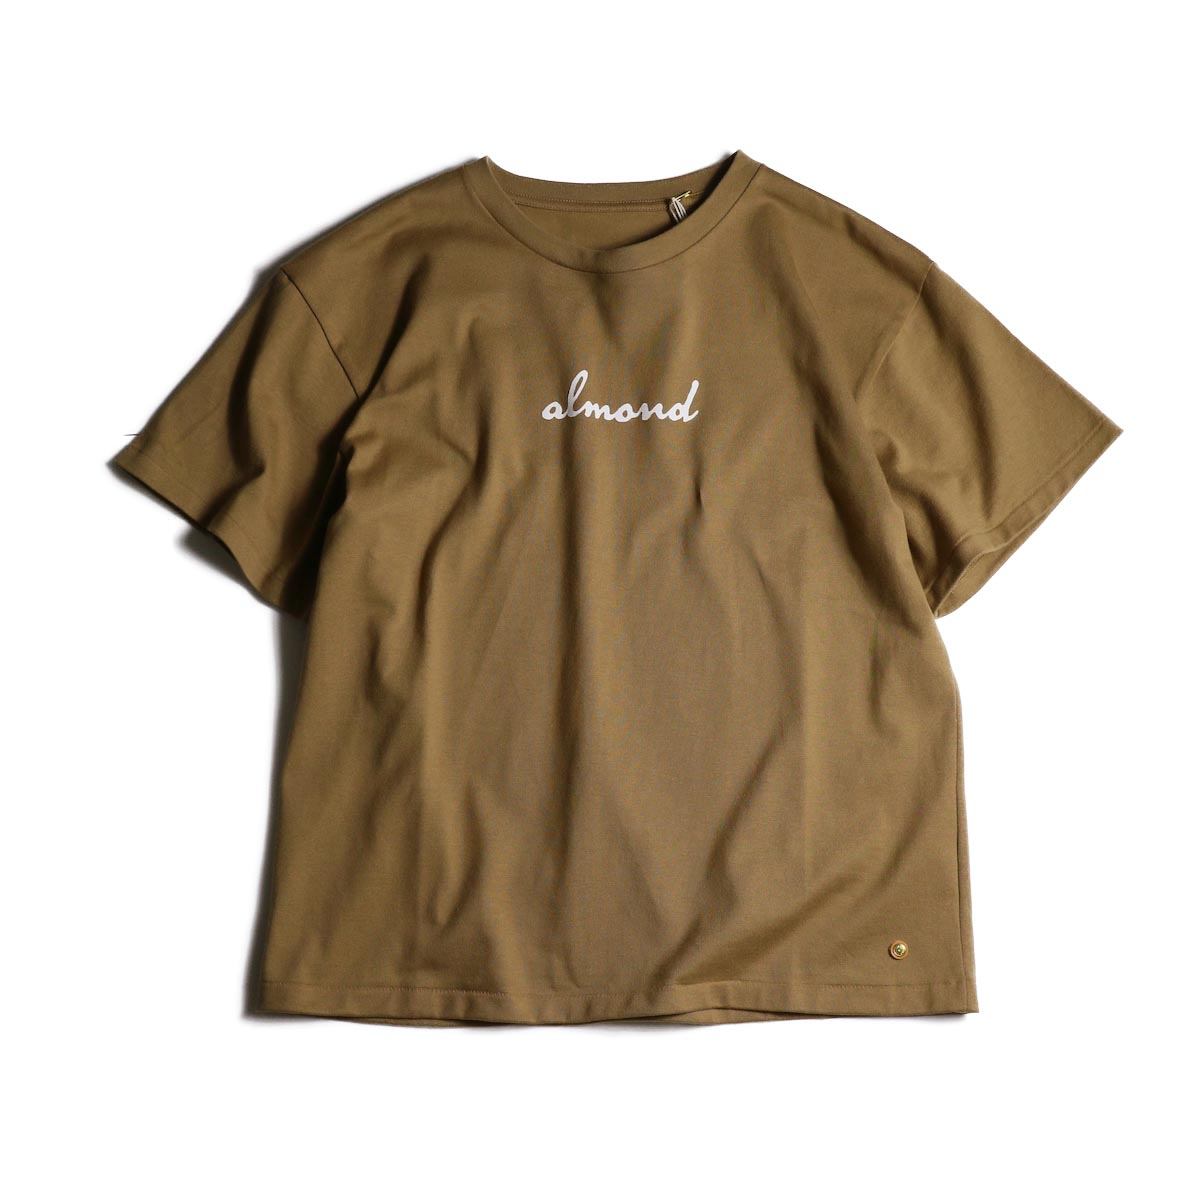 MASTER & Co. / Print T-Shrit (almond)